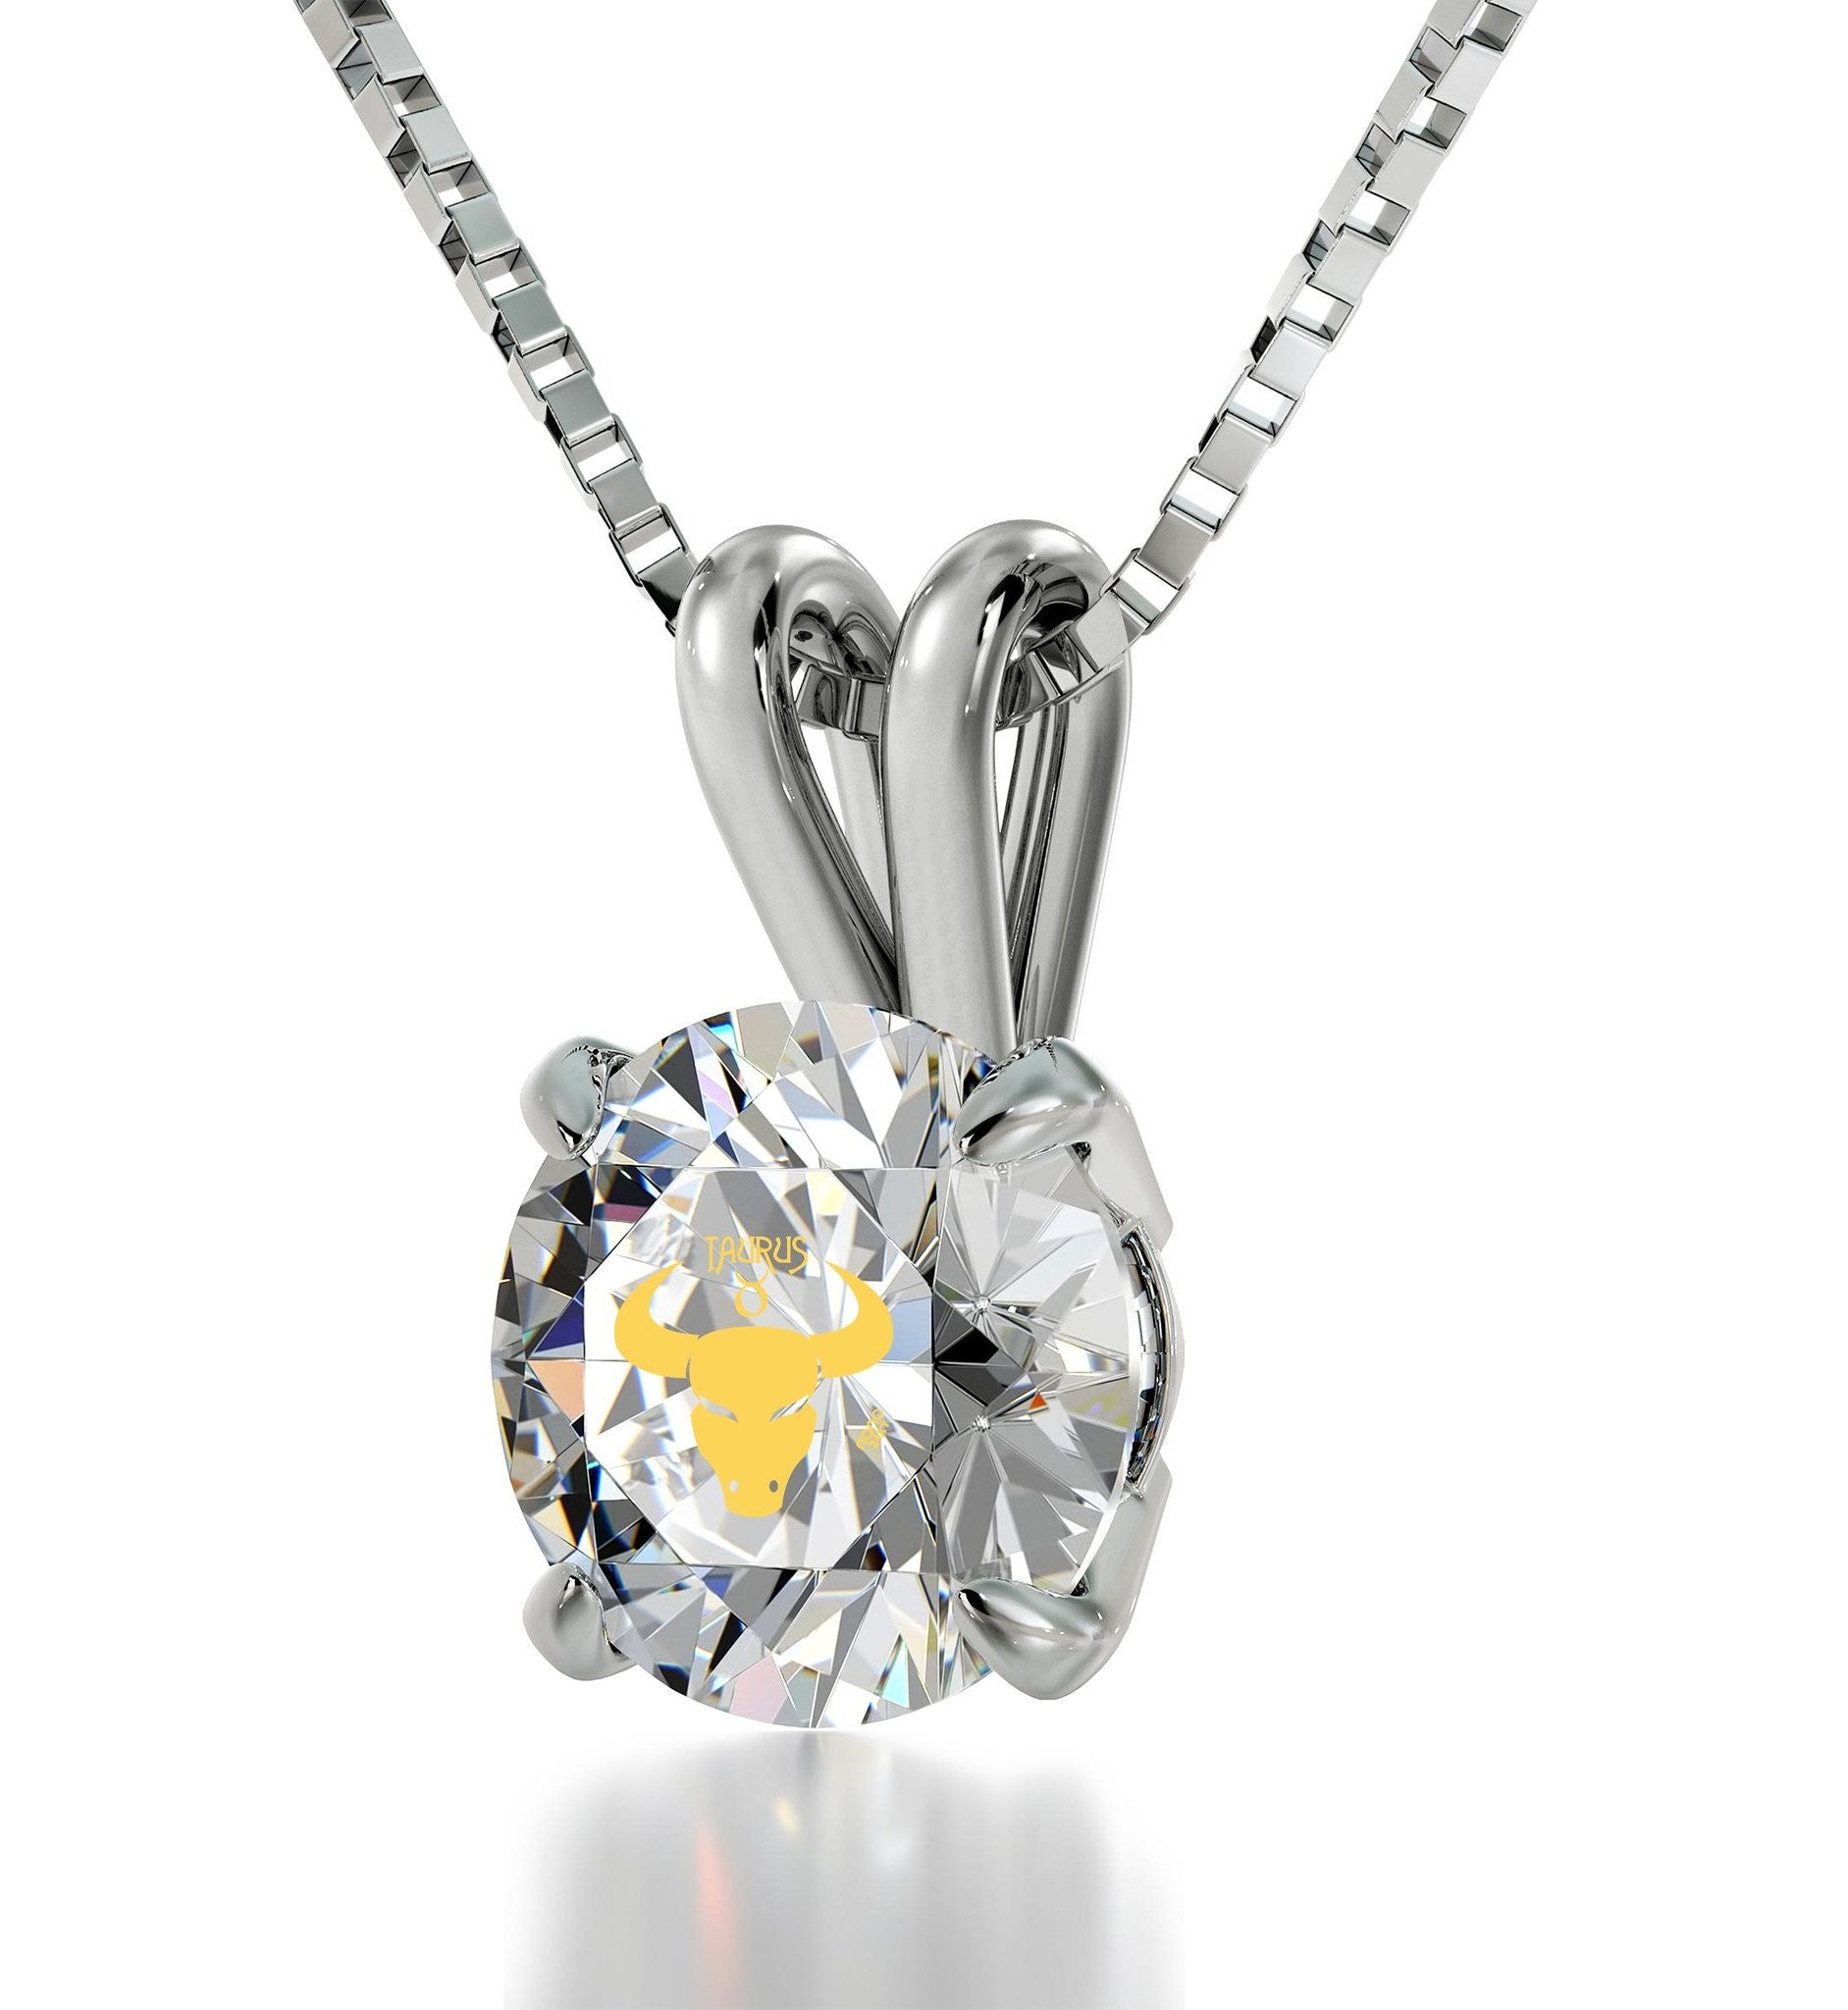 """BestValentineGift for Her: ZodiacSignNecklace, Women's14k White GoldJewelry, XmasIdeas for Wife by Nano"""